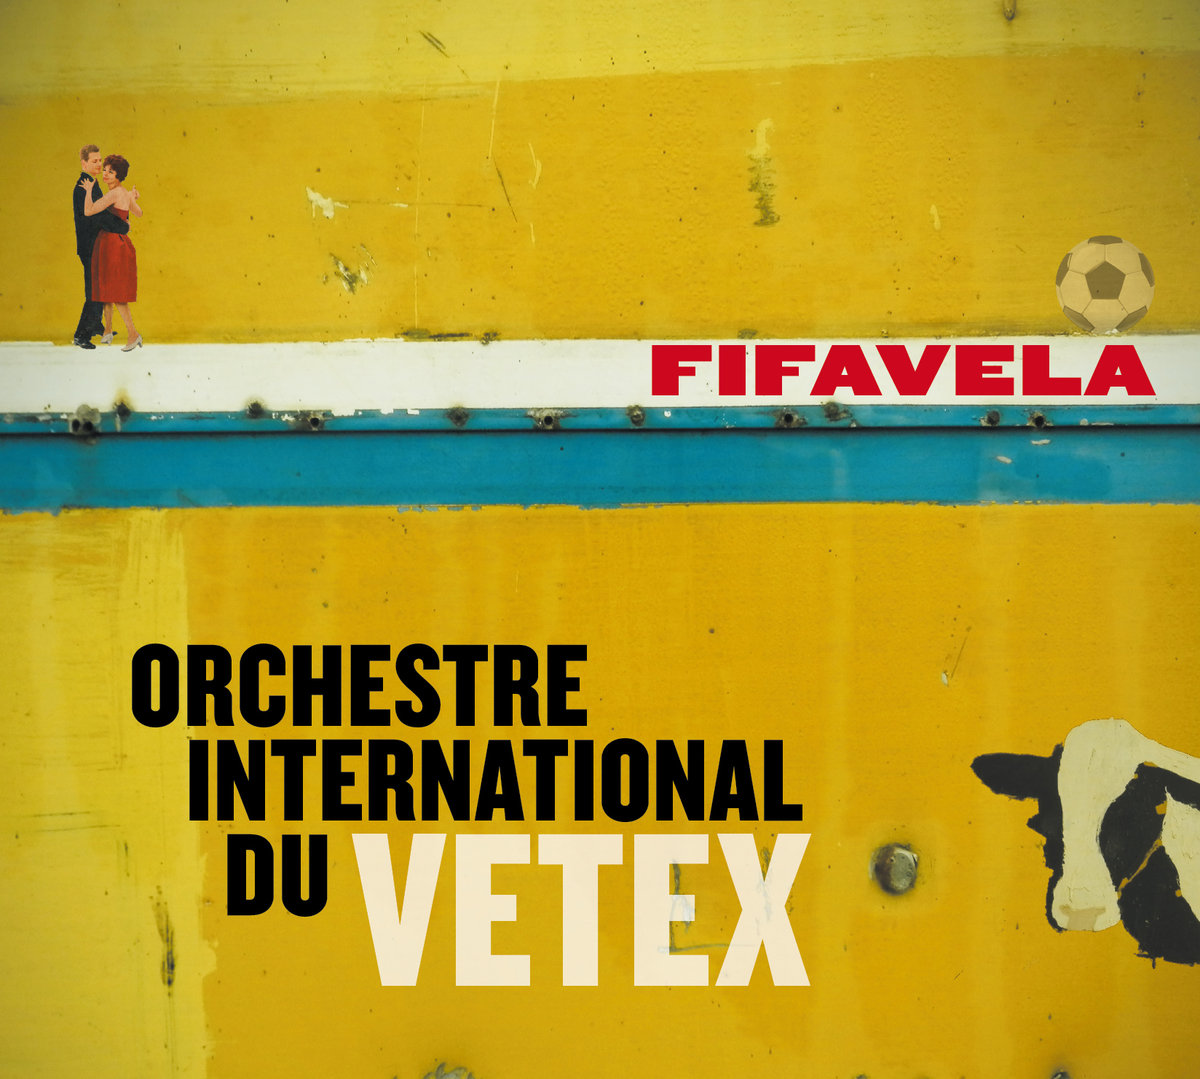 ORCHESTRE INTERNATIONAL DU VETEX – Fifavela